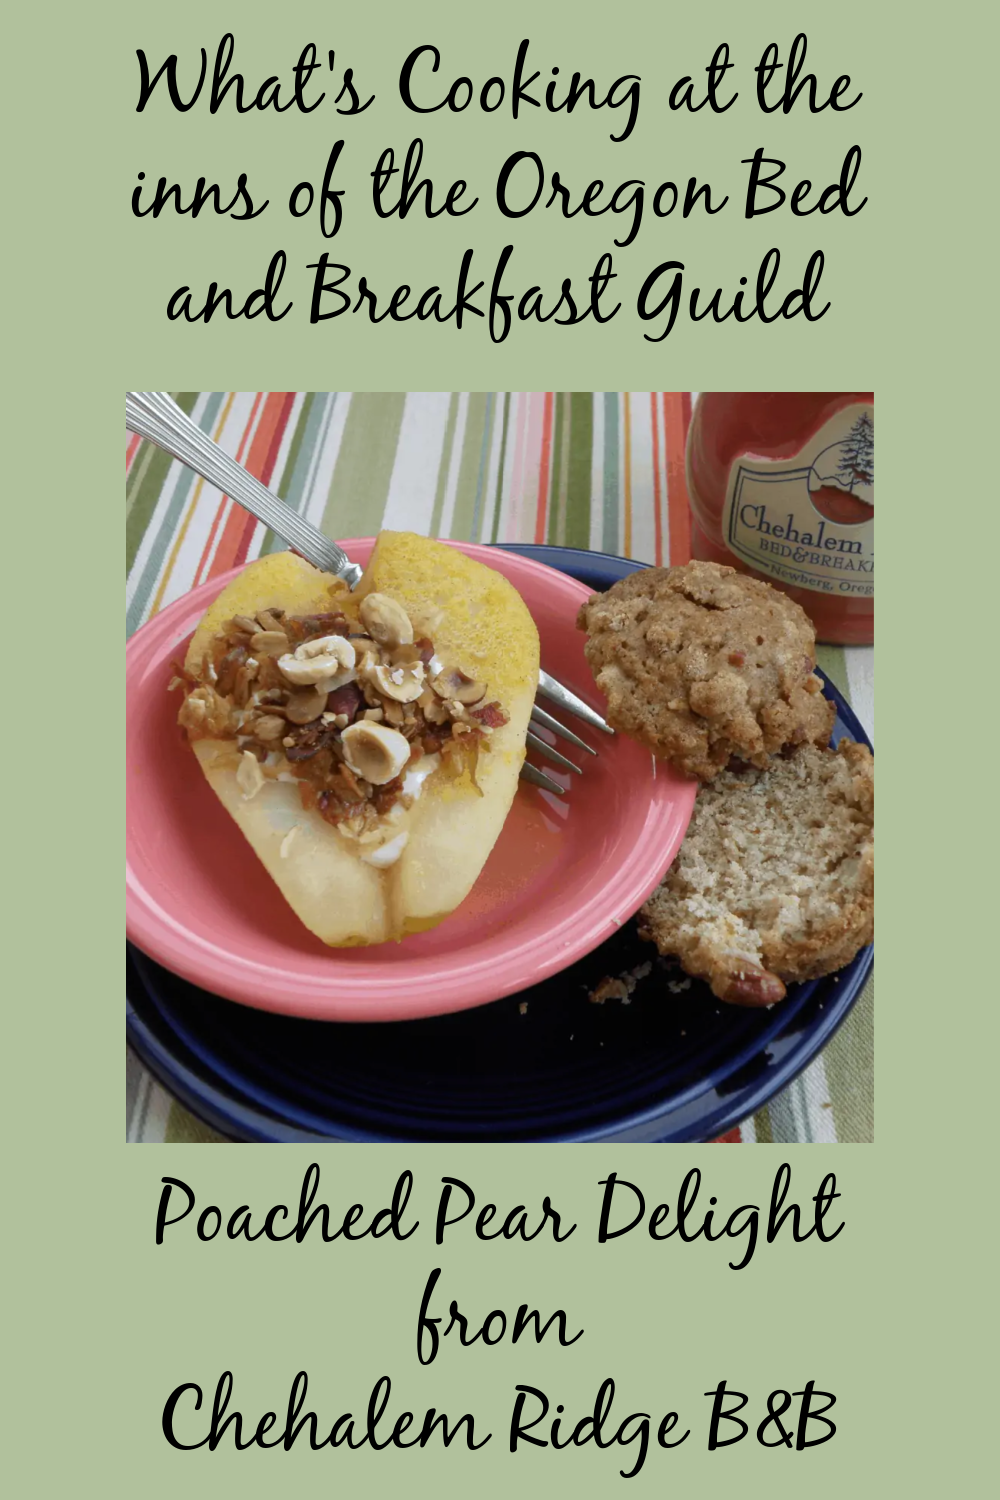 Poached Pear Delight